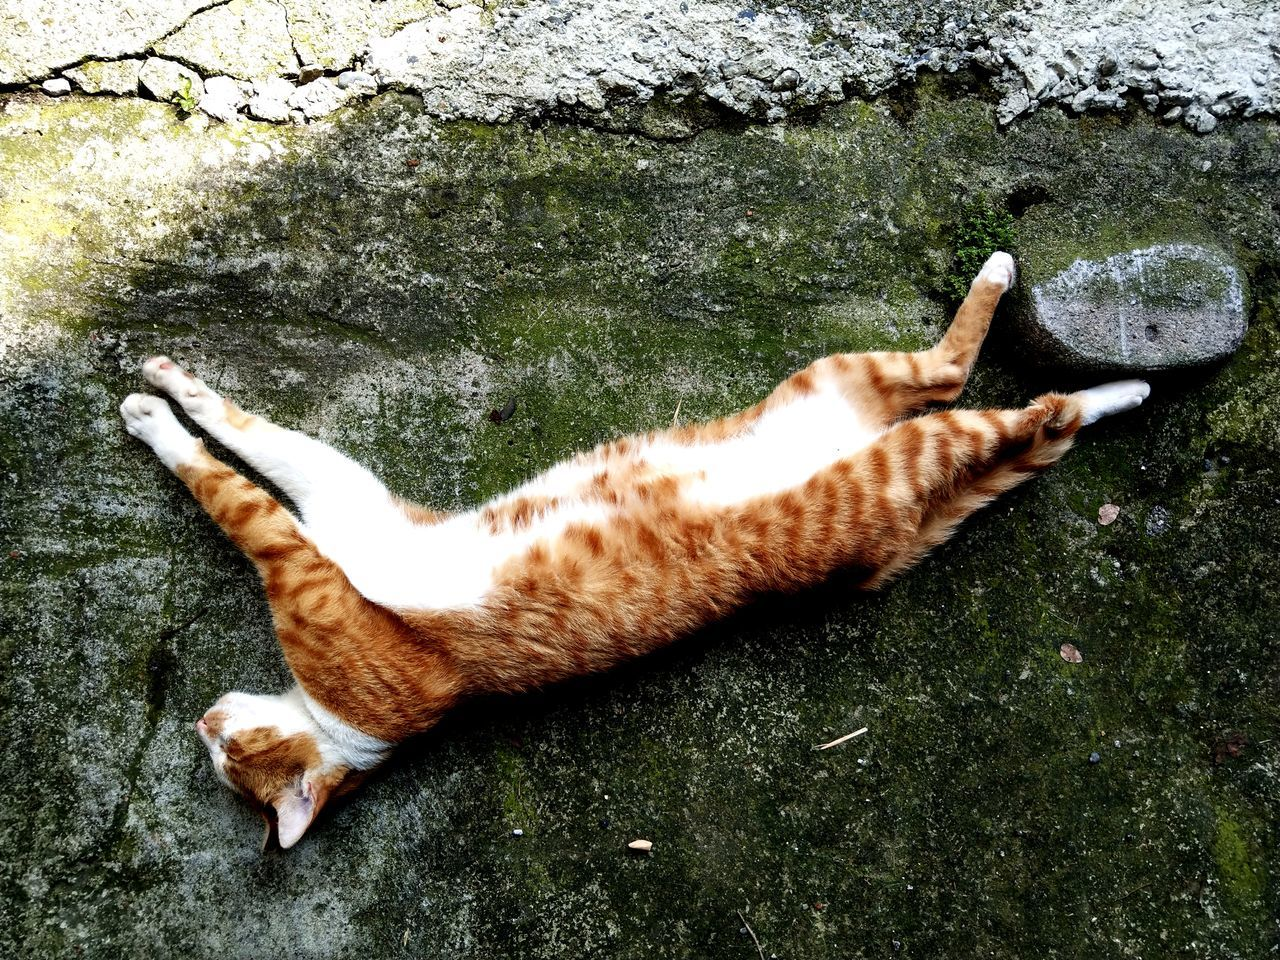 High Angle View Of Ginger Cat Lying On Concrete Footpath